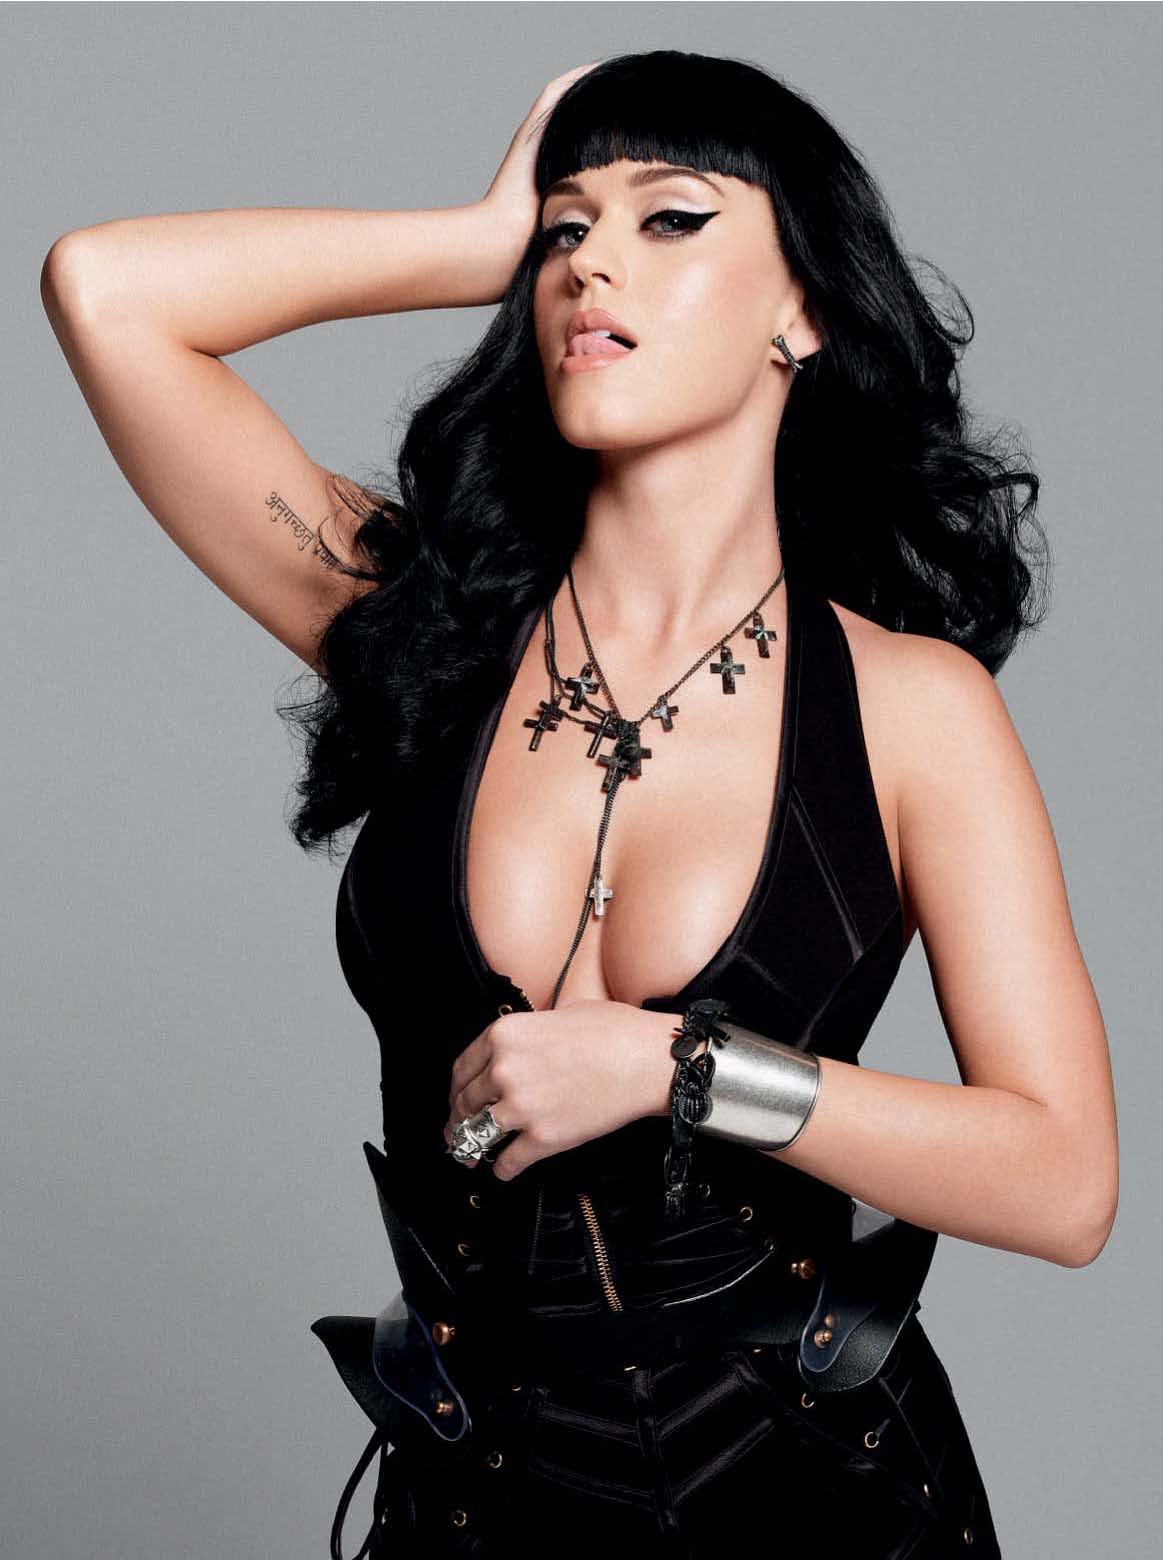 http://3.bp.blogspot.com/-baxIWZXQ6KE/TtjxLEy7YnI/AAAAAAAAEvA/EcNsCZ0i2Jc/s1600/64744_KatyPerry_Esquire_UK_August20101_122_630lo.jpg